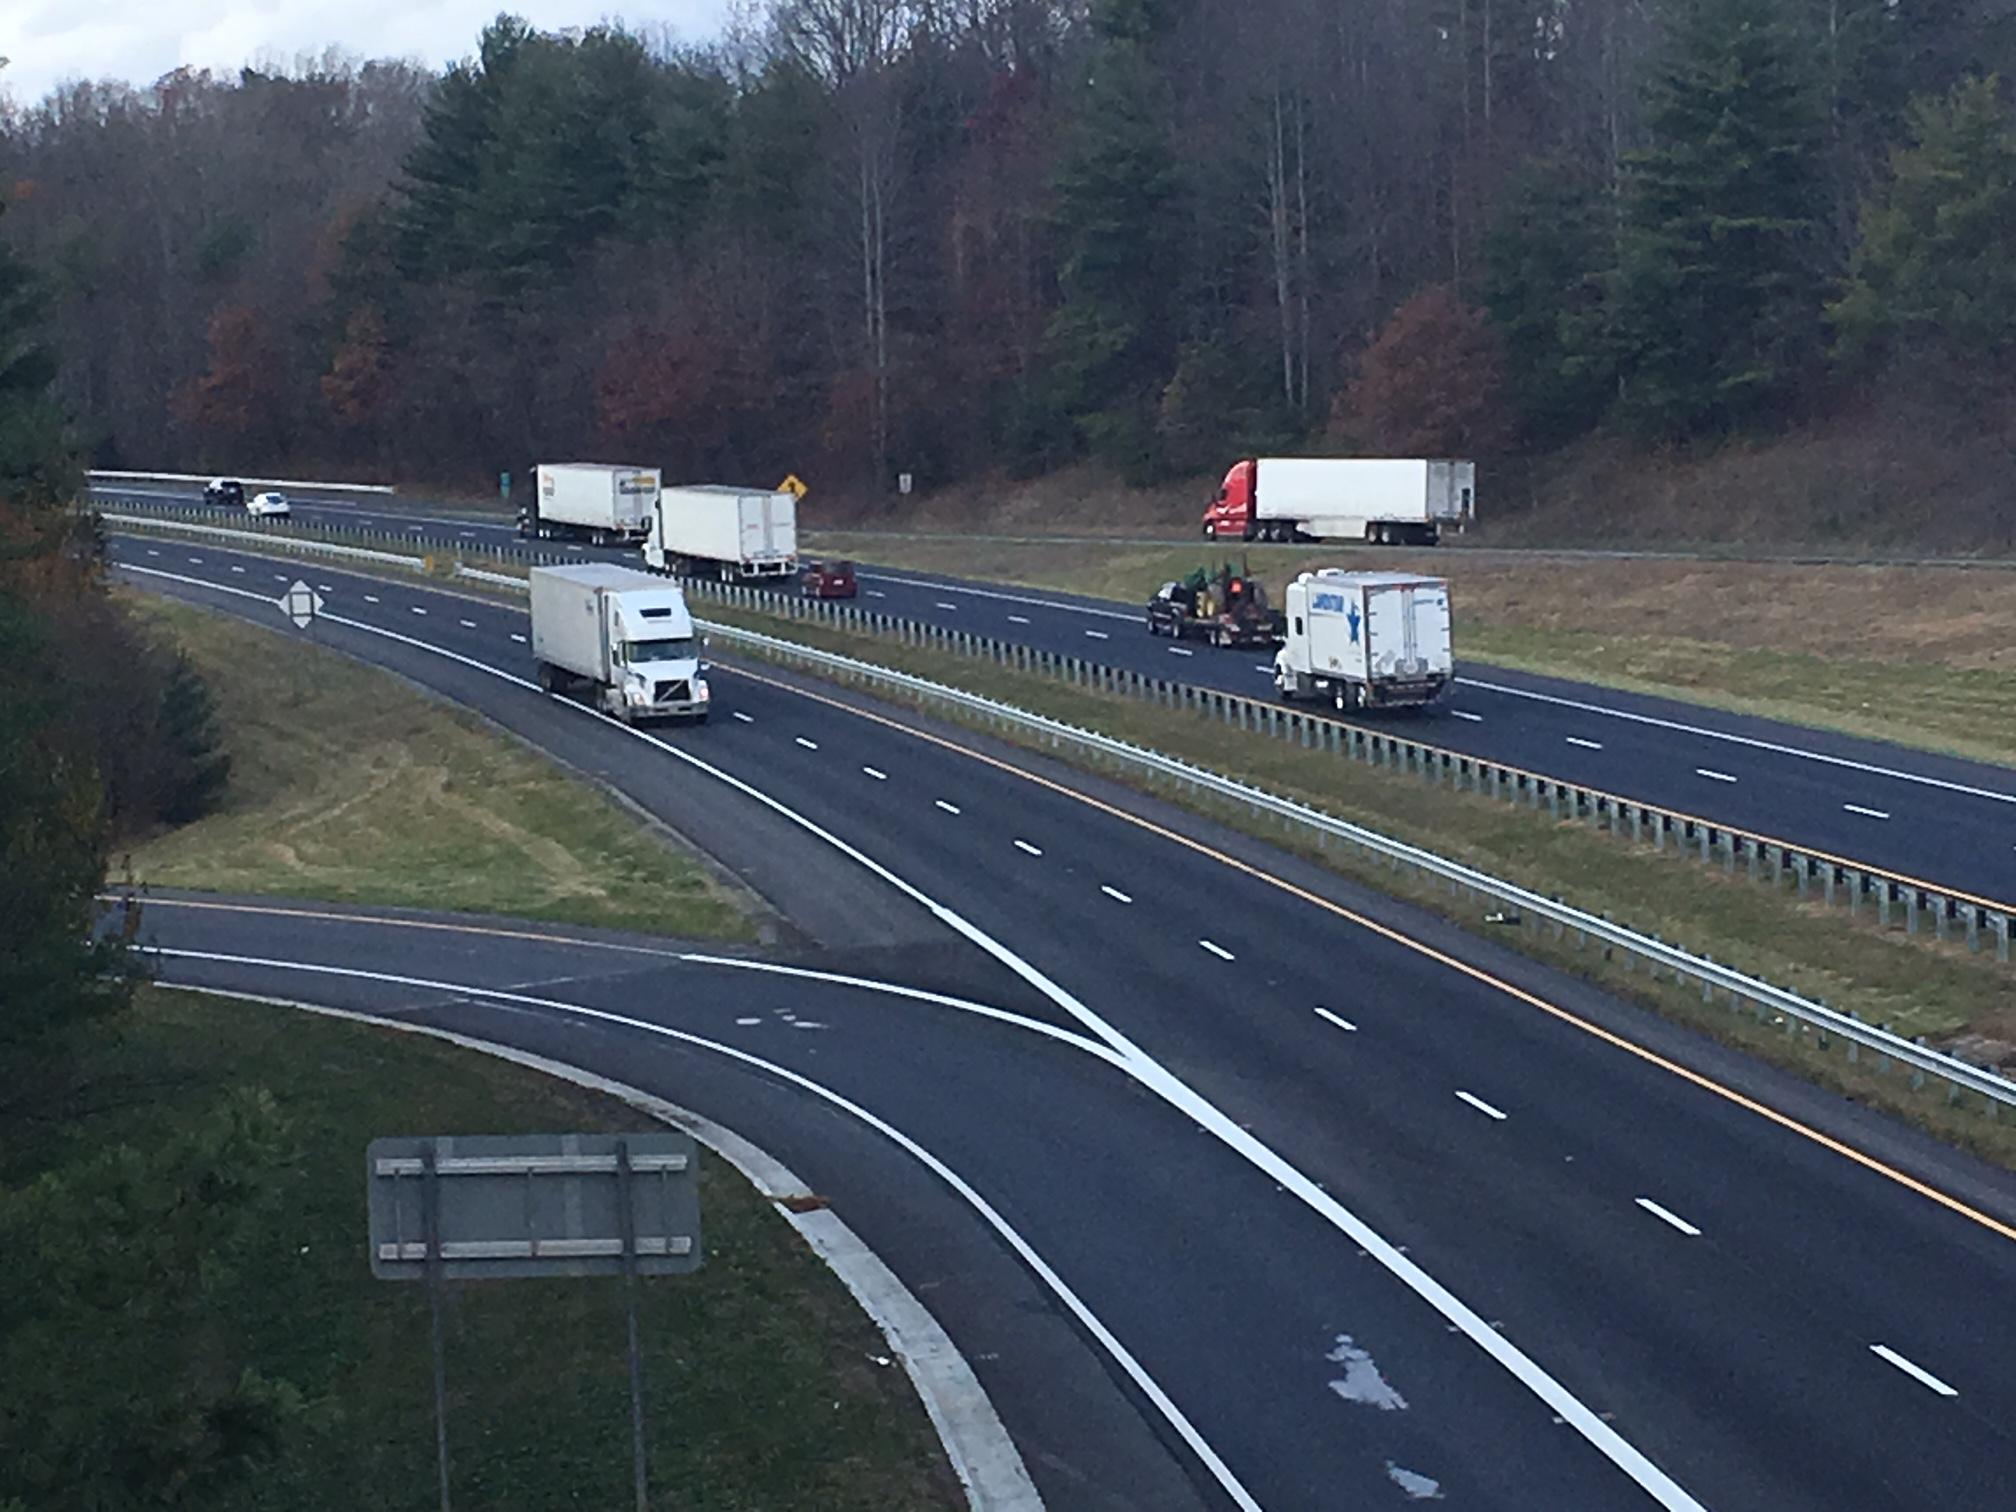 Thanksgiving travel will flow more easily now along Interstate 40 in Haywood County since work five sets of bridges on a seven-mile stretch has been completed early. (Photo credit: WLOS staff)